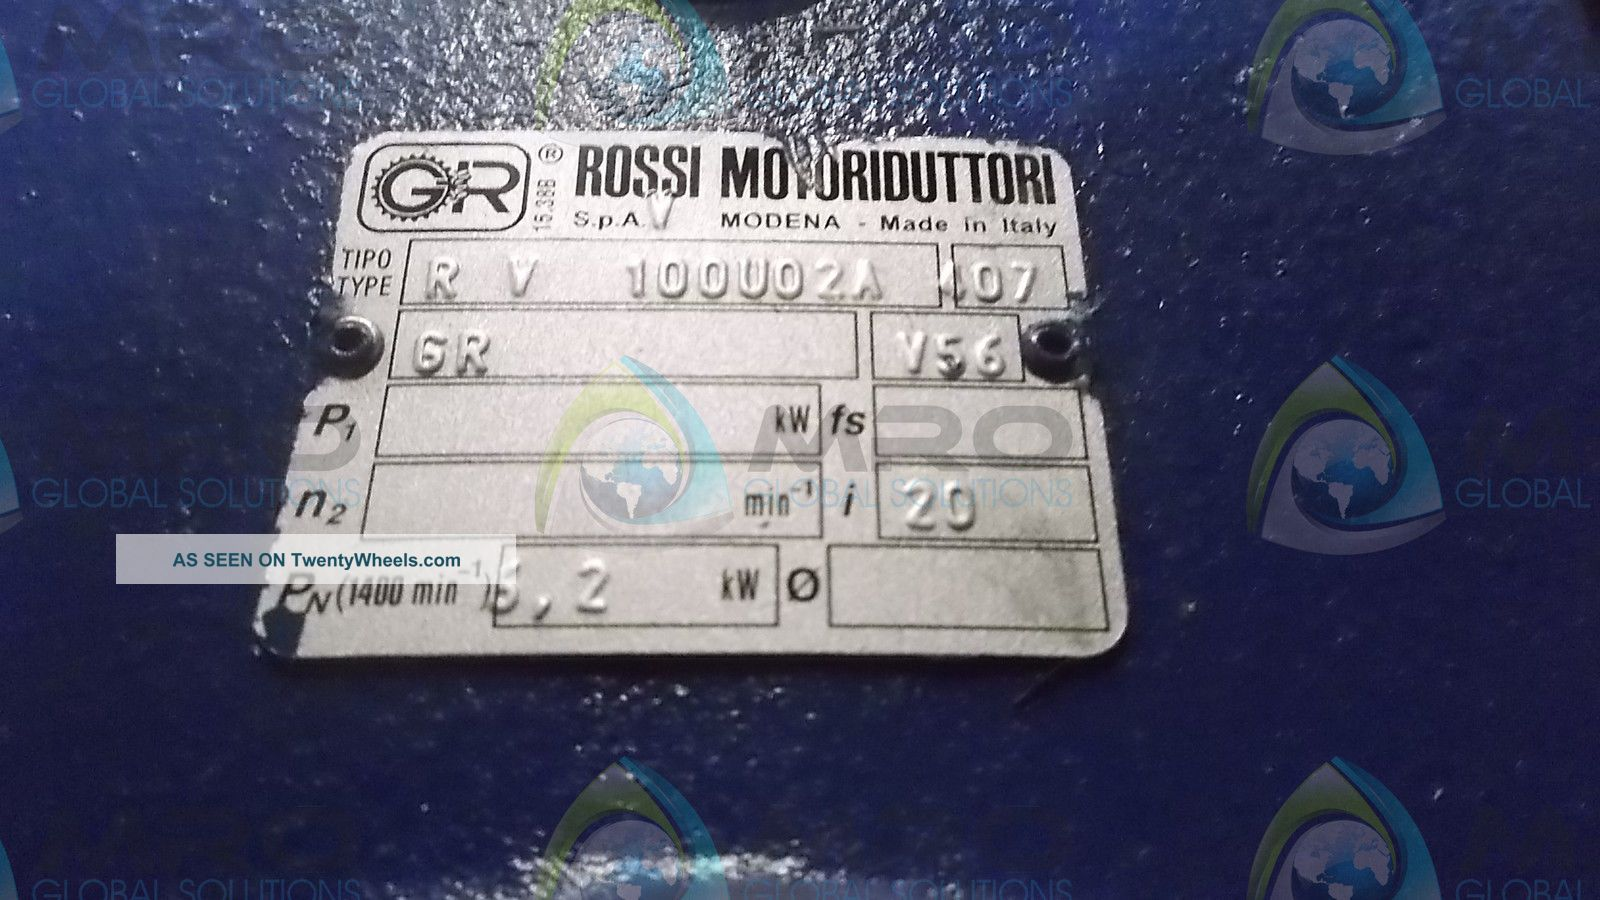 Rossi Motoruduttori Rv 100u02a Forklifts photo